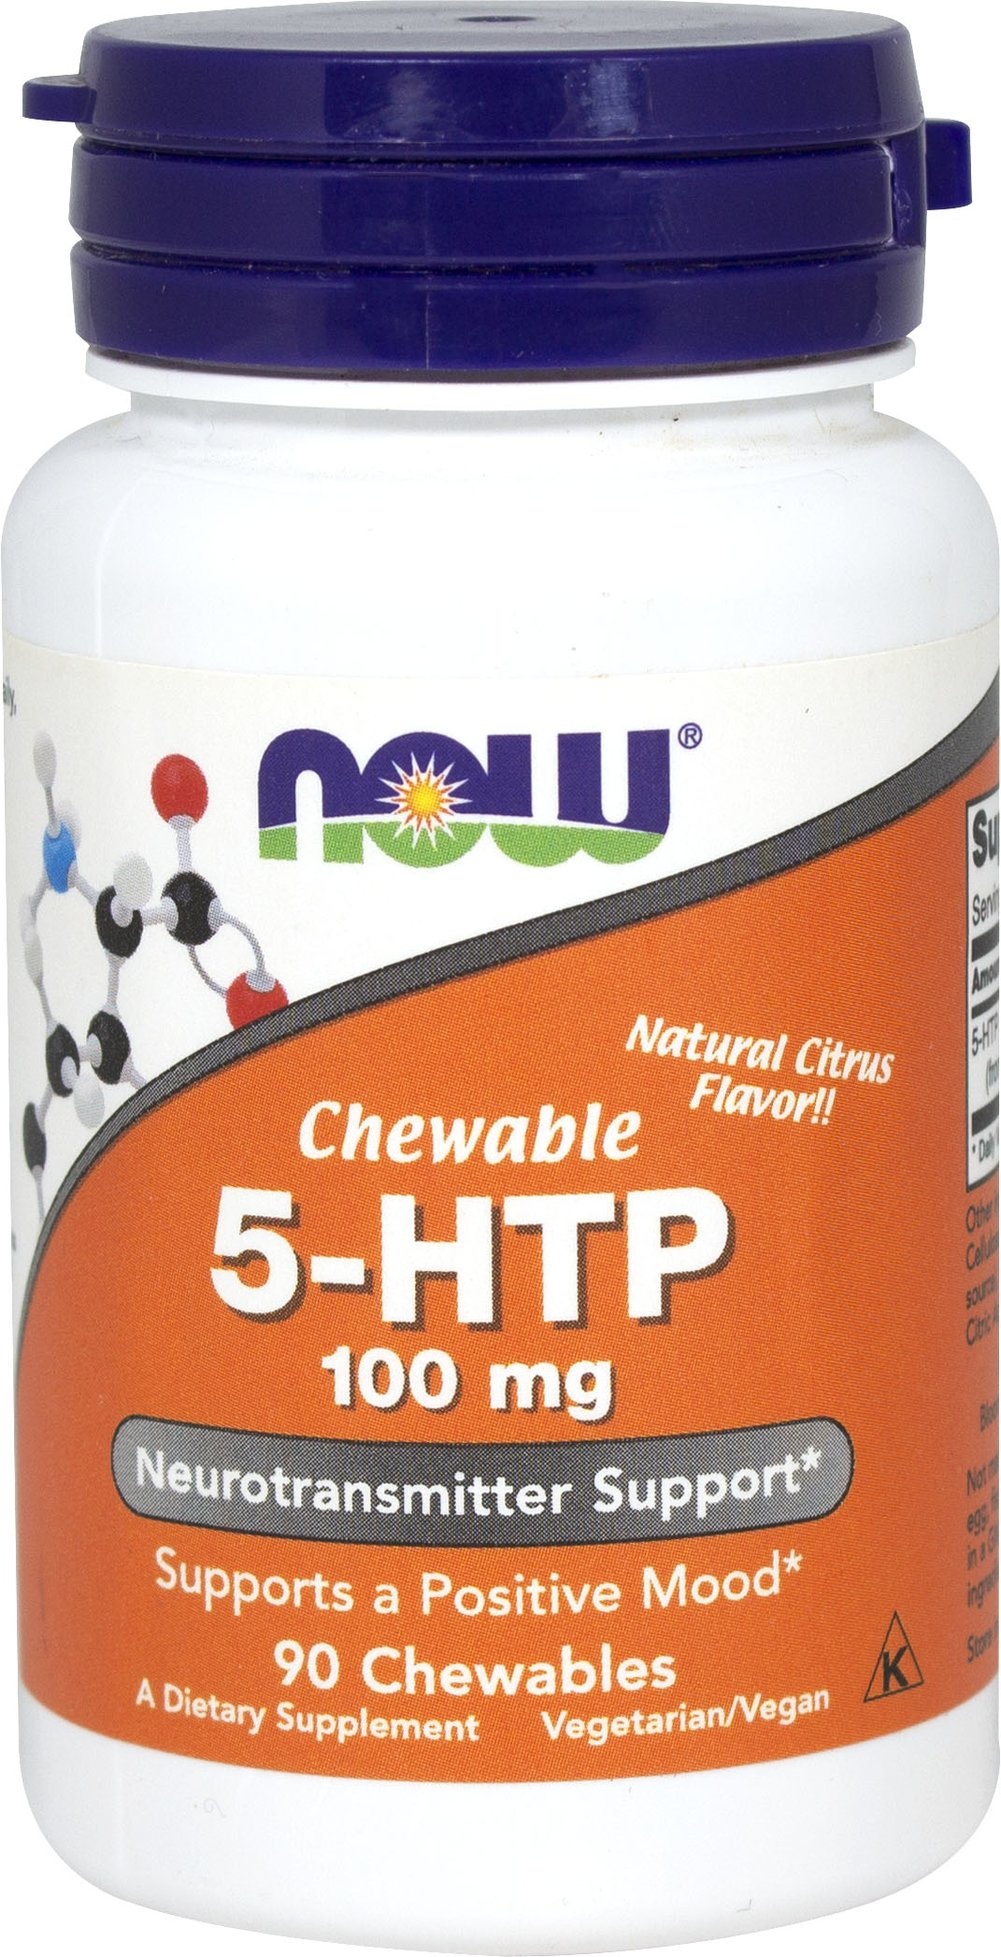 5-HTP 100 MG Chewable <p><strong>From the Manufacturer's label</strong></p><p>NOW® Foods Chewable 5-HTP,  the intermediate metabolite between the amino acid L-tryptophan and serotonin, is extracted from the bean of an African plant (Griffonia simplicifolia). NOW® Foods Chewable 5-HTP has a natural citrus flavor in a vegetarian formula.</p><p>Manufactured by NOW® Foods</p><p></p><strong></strong> 90 Chewabl